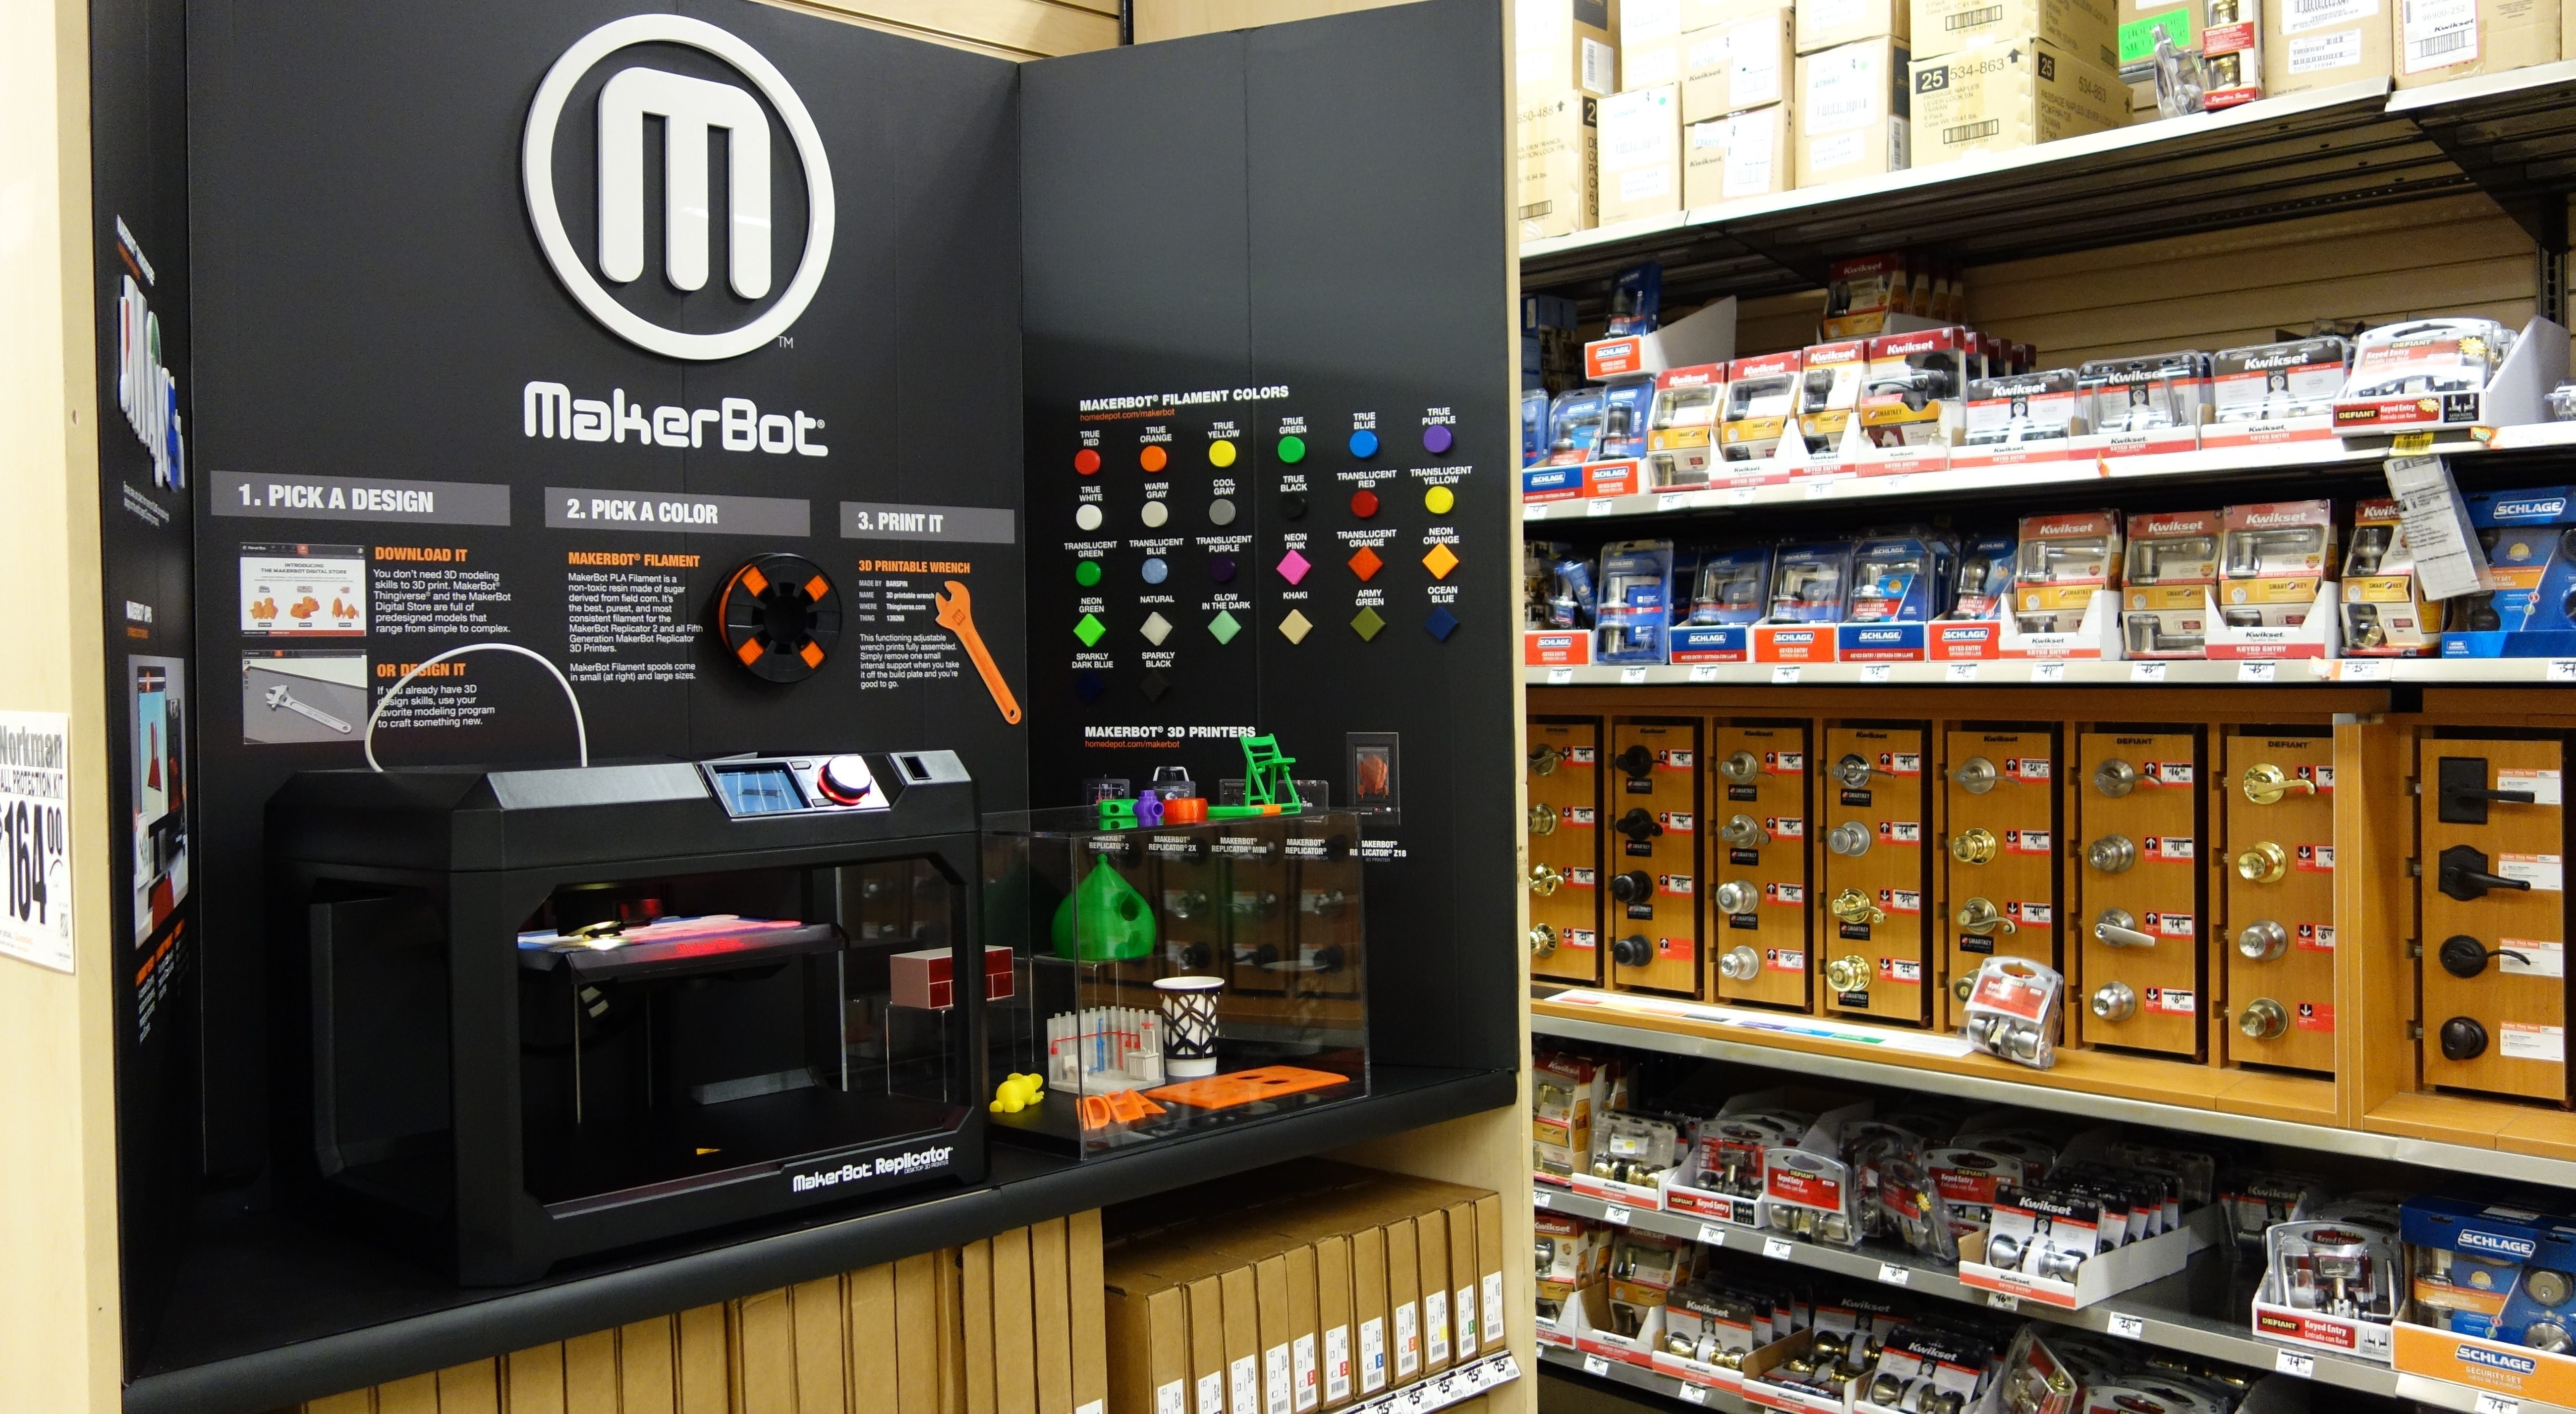 MakerBot and The Home Depot(R) announce a collaboration to bring MakerBot(R) Replicator(R) Desktop 3D Printers to customers on homedepot.com/makerbot and in 12 Home Depot stores in California, Illinois and New York beginning July 14, 2014. This is the first time The Home Depot has offered 3D printers for sale in its stores and will be a pilot program for MakerBot and The Home Depot. (Photo: Business Wire)